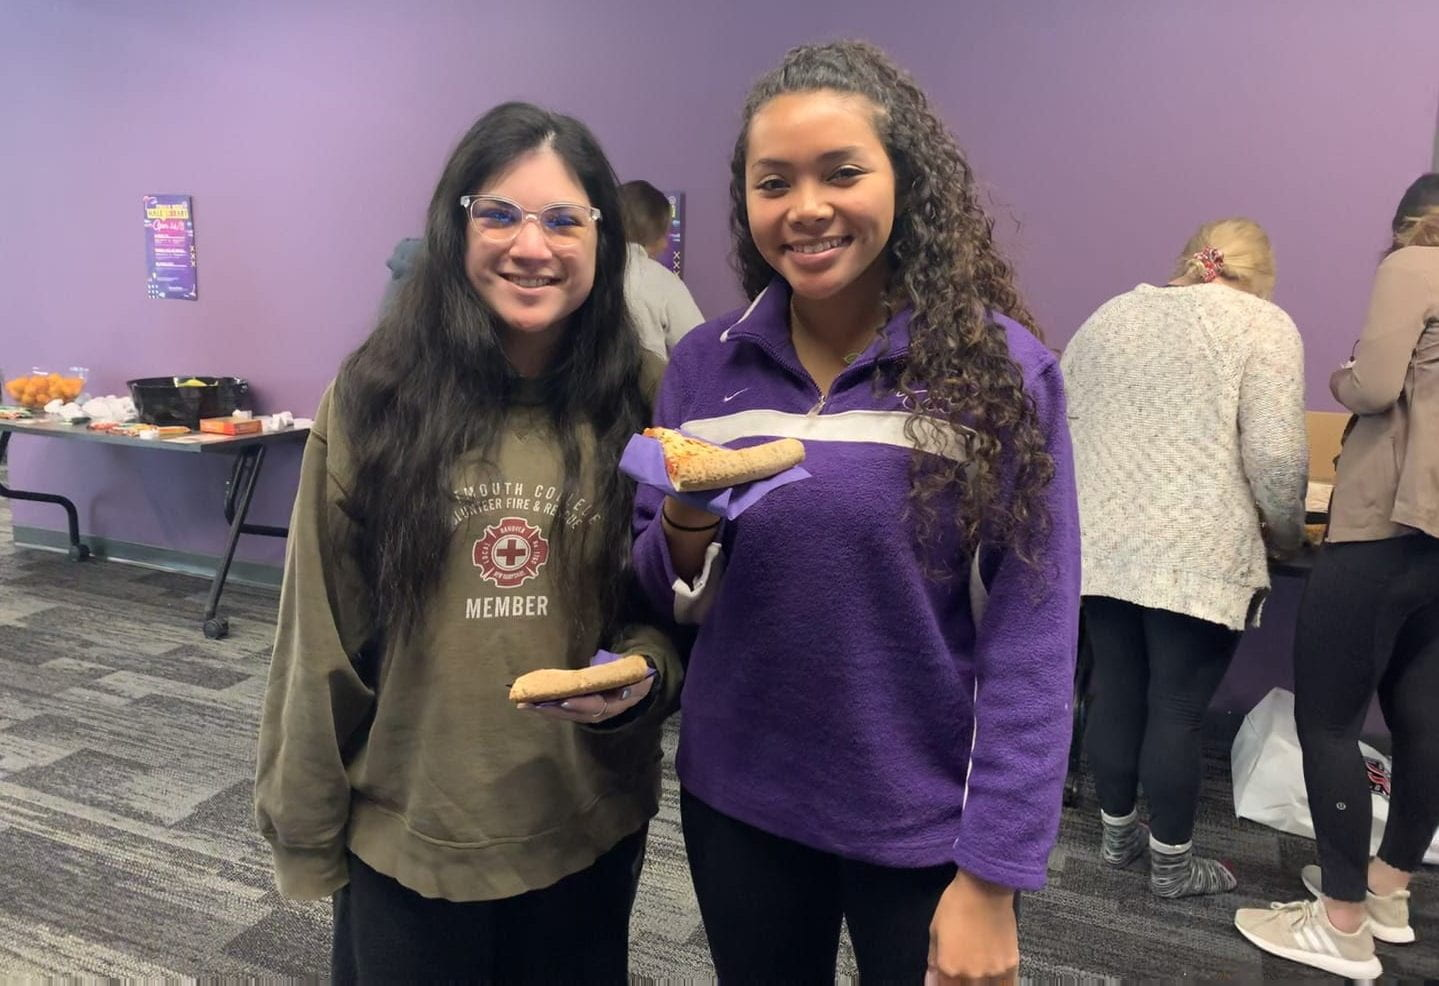 Two students smile holding pizza.